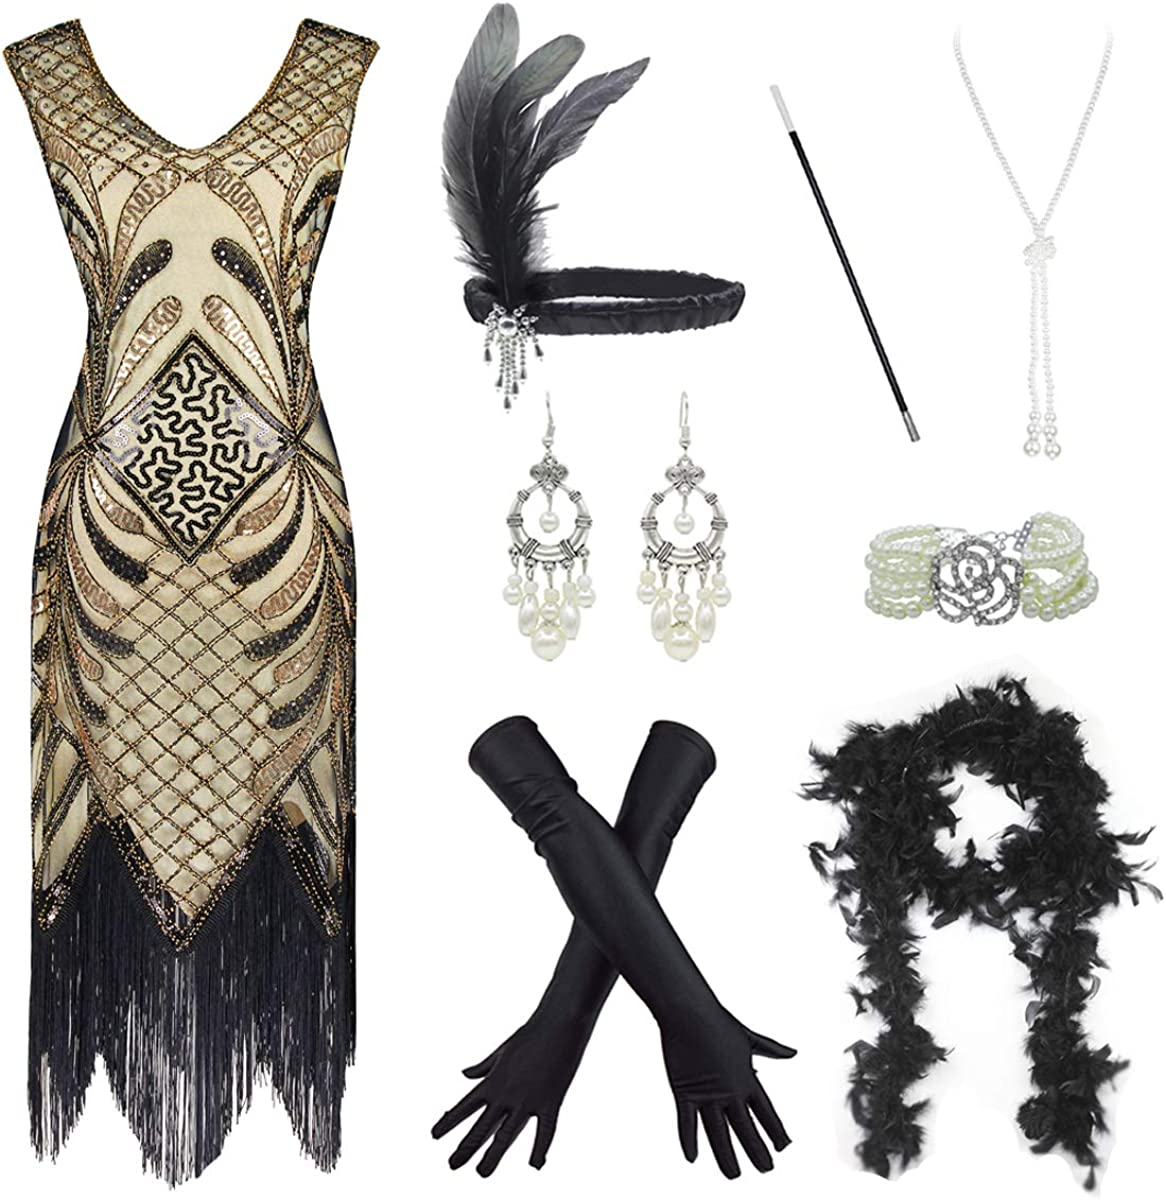 Women 1920s Sequin Time sale Beads Fringed Dress Flapper 20s Cocktail Fixed price for sale Plus